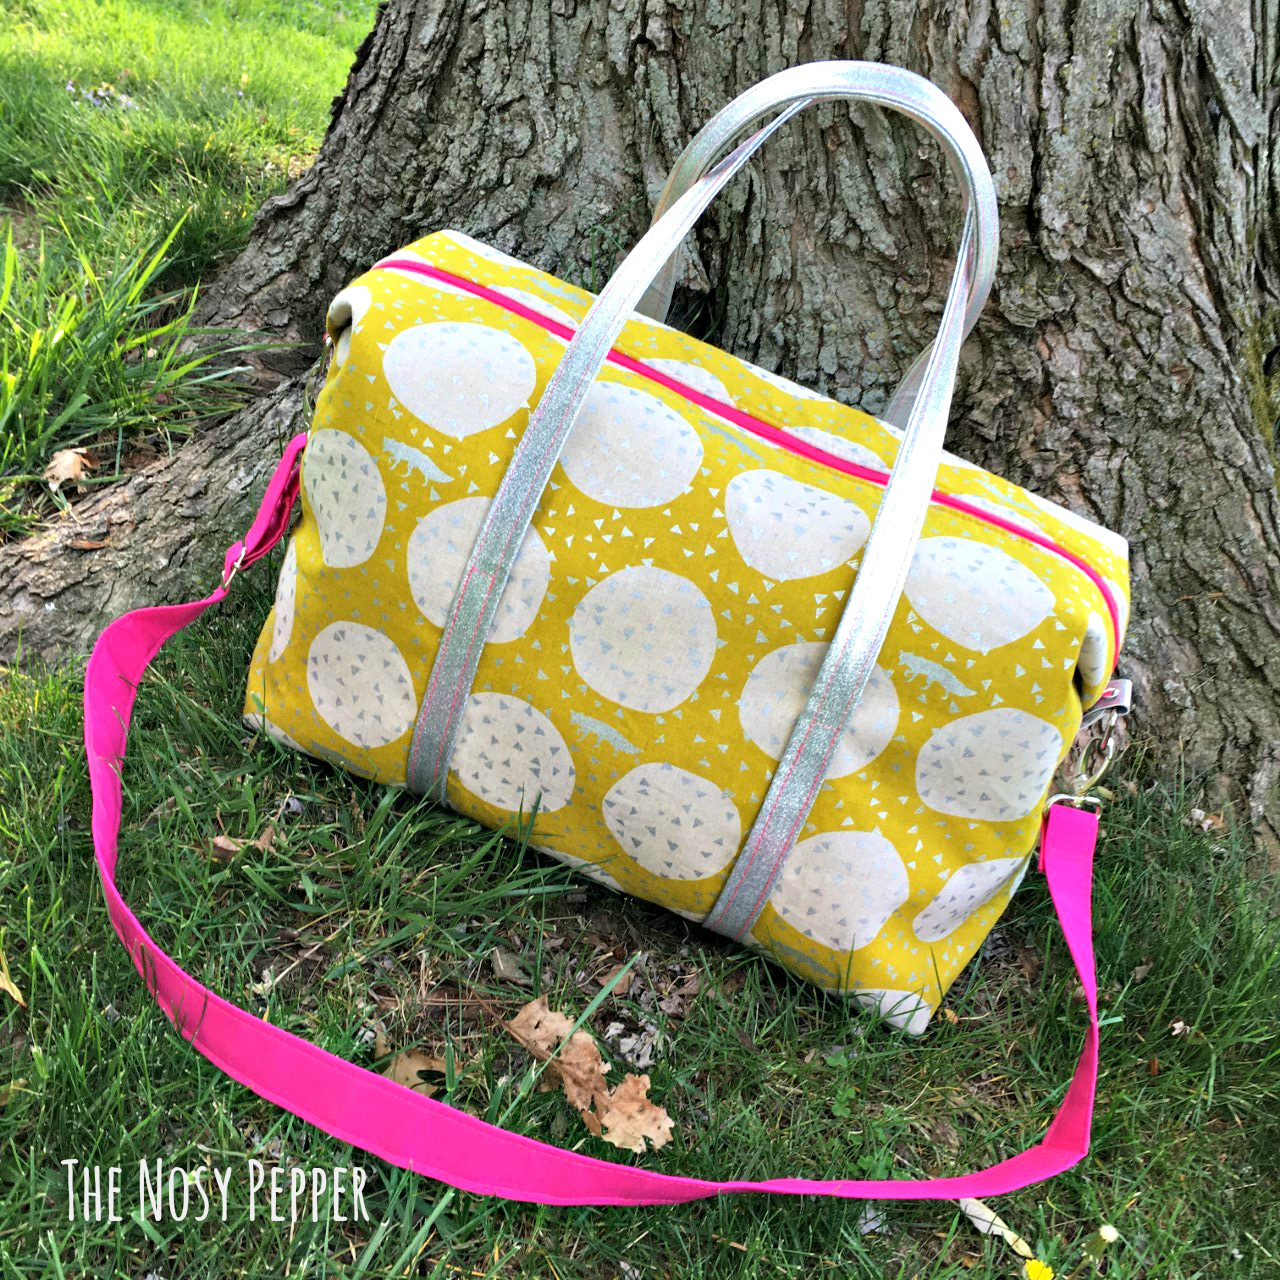 Sew Sweetness Emblem Duffle Bag, sewn by Cyndi of the Nosy Pepper